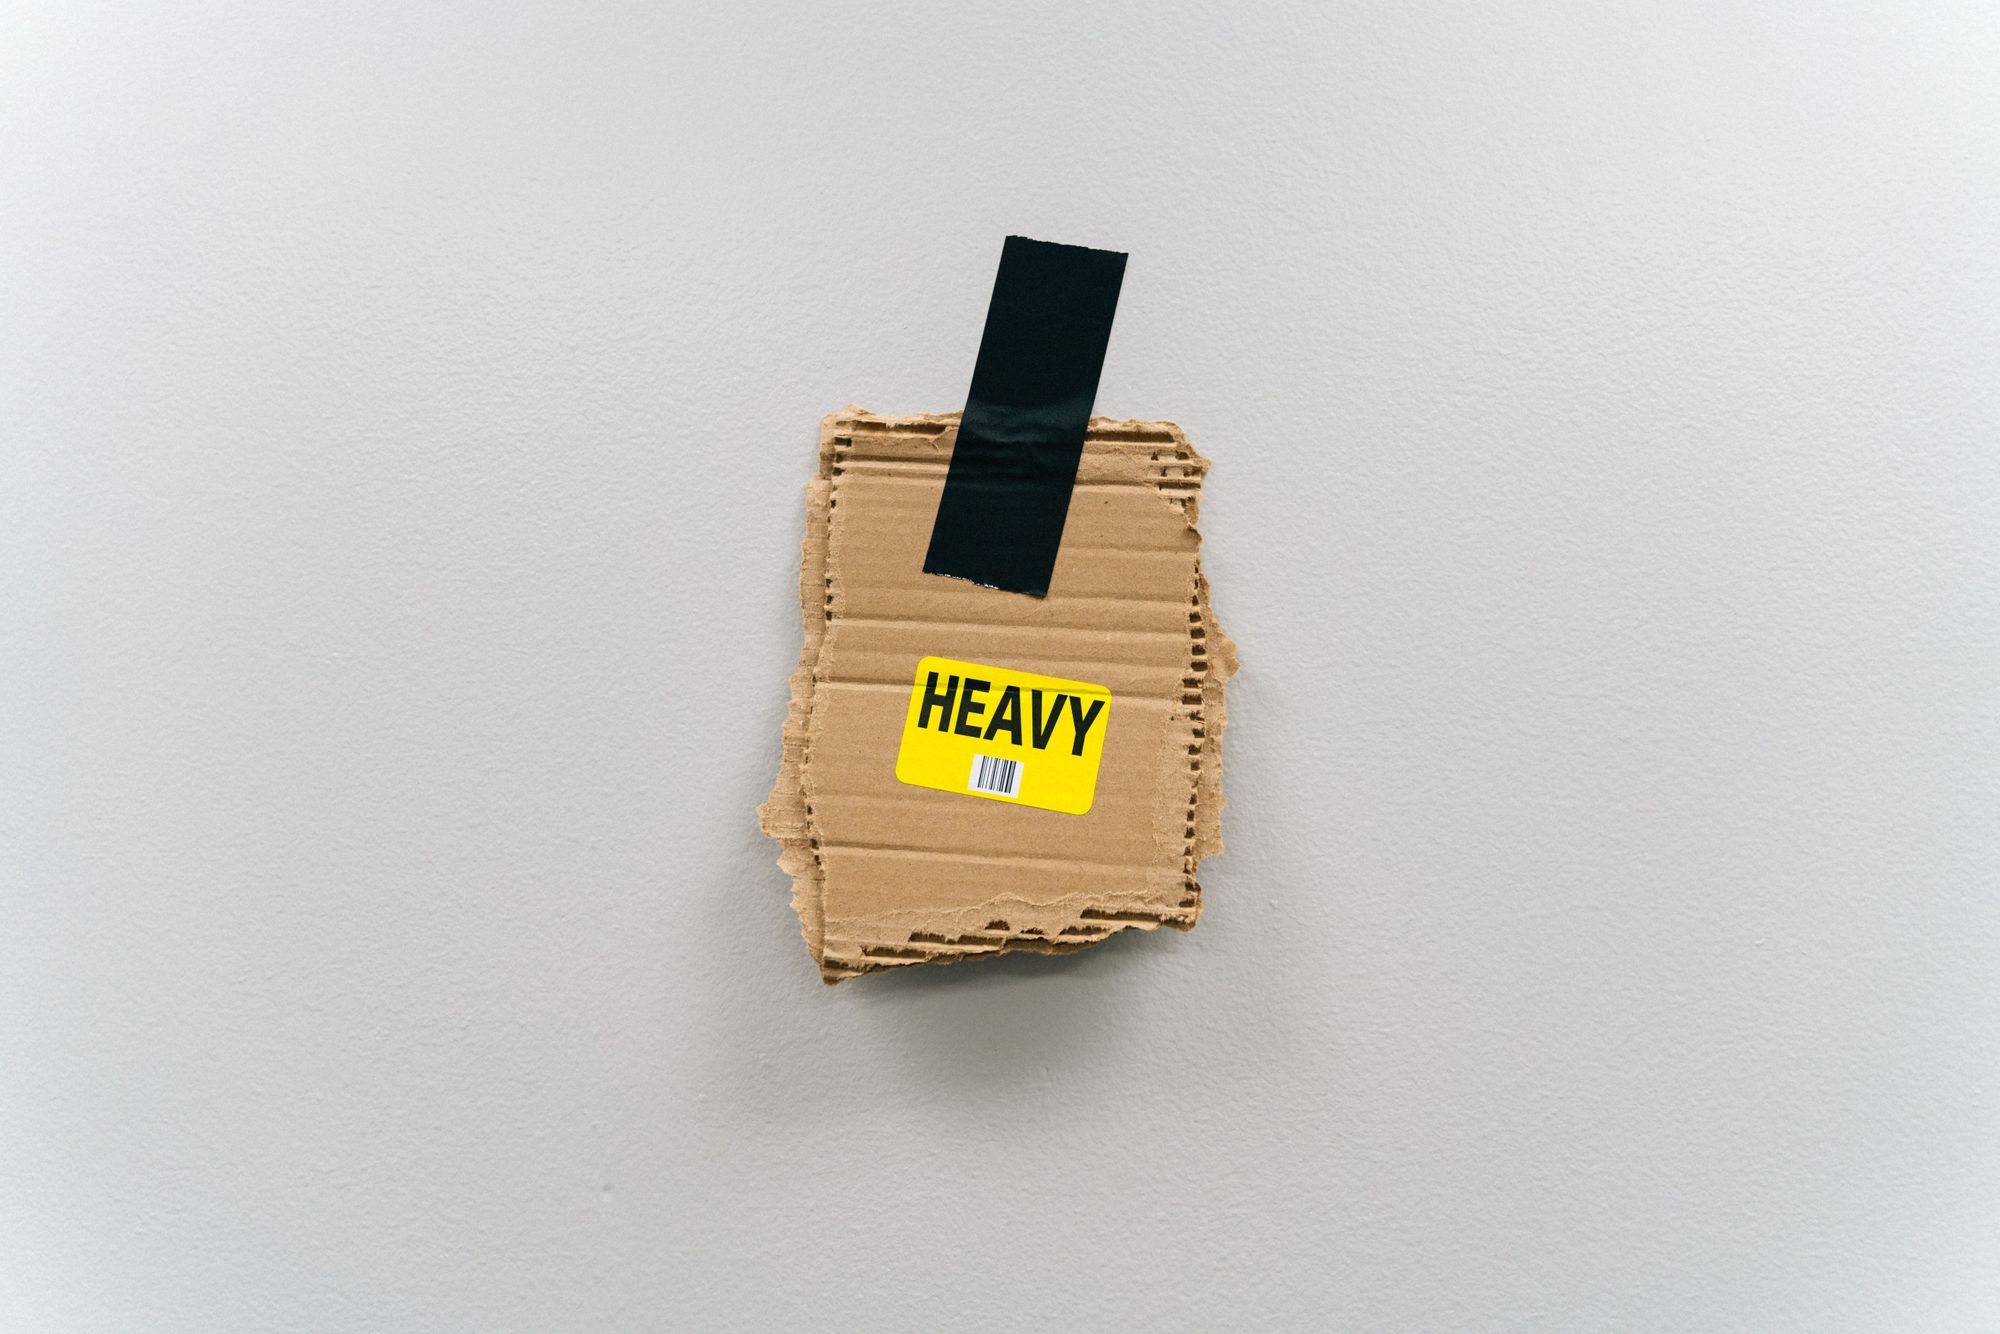 Heavy tag from shipping box